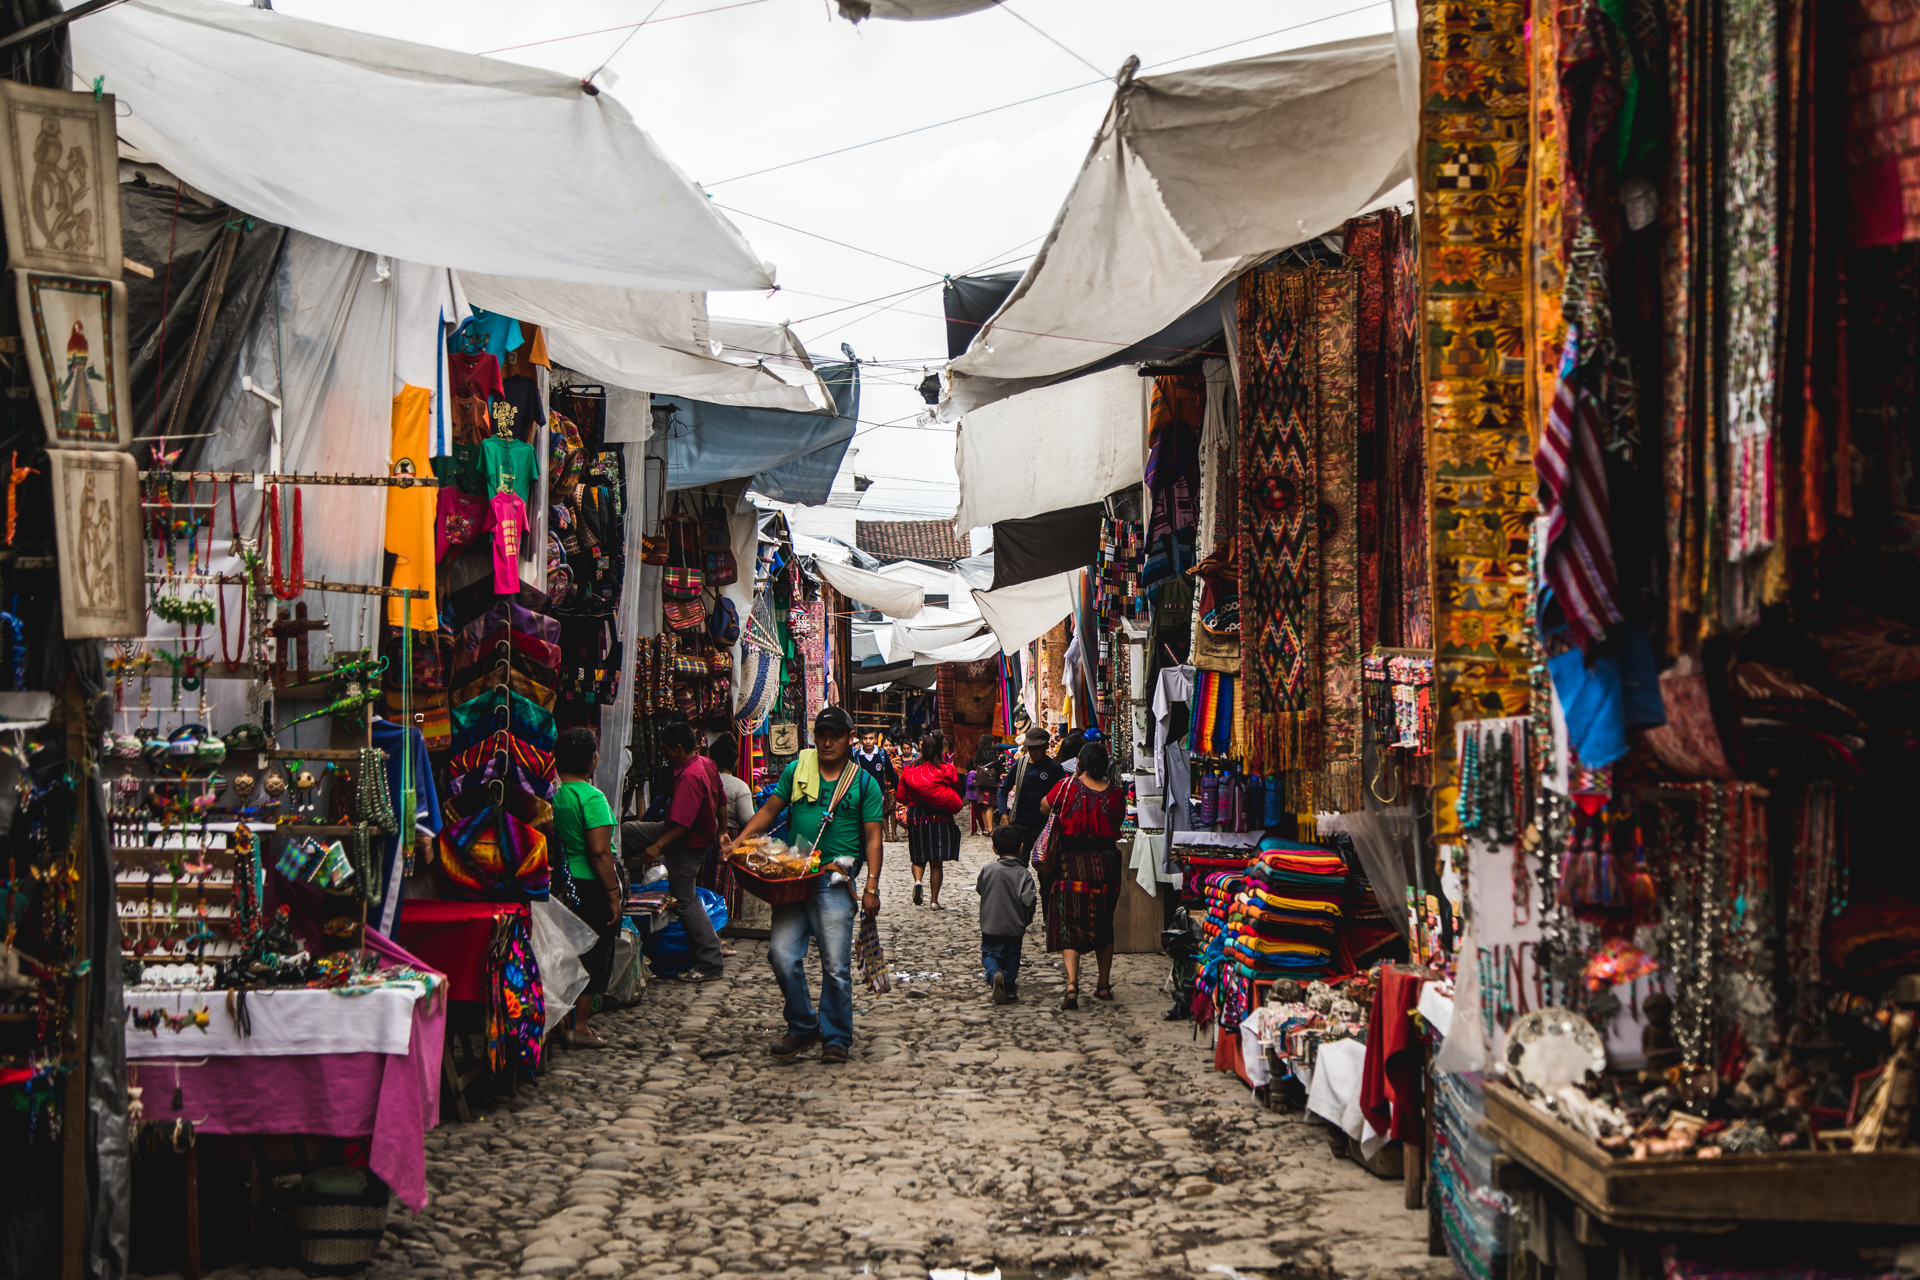 One of the many aisles of the market at Chichicastenango.